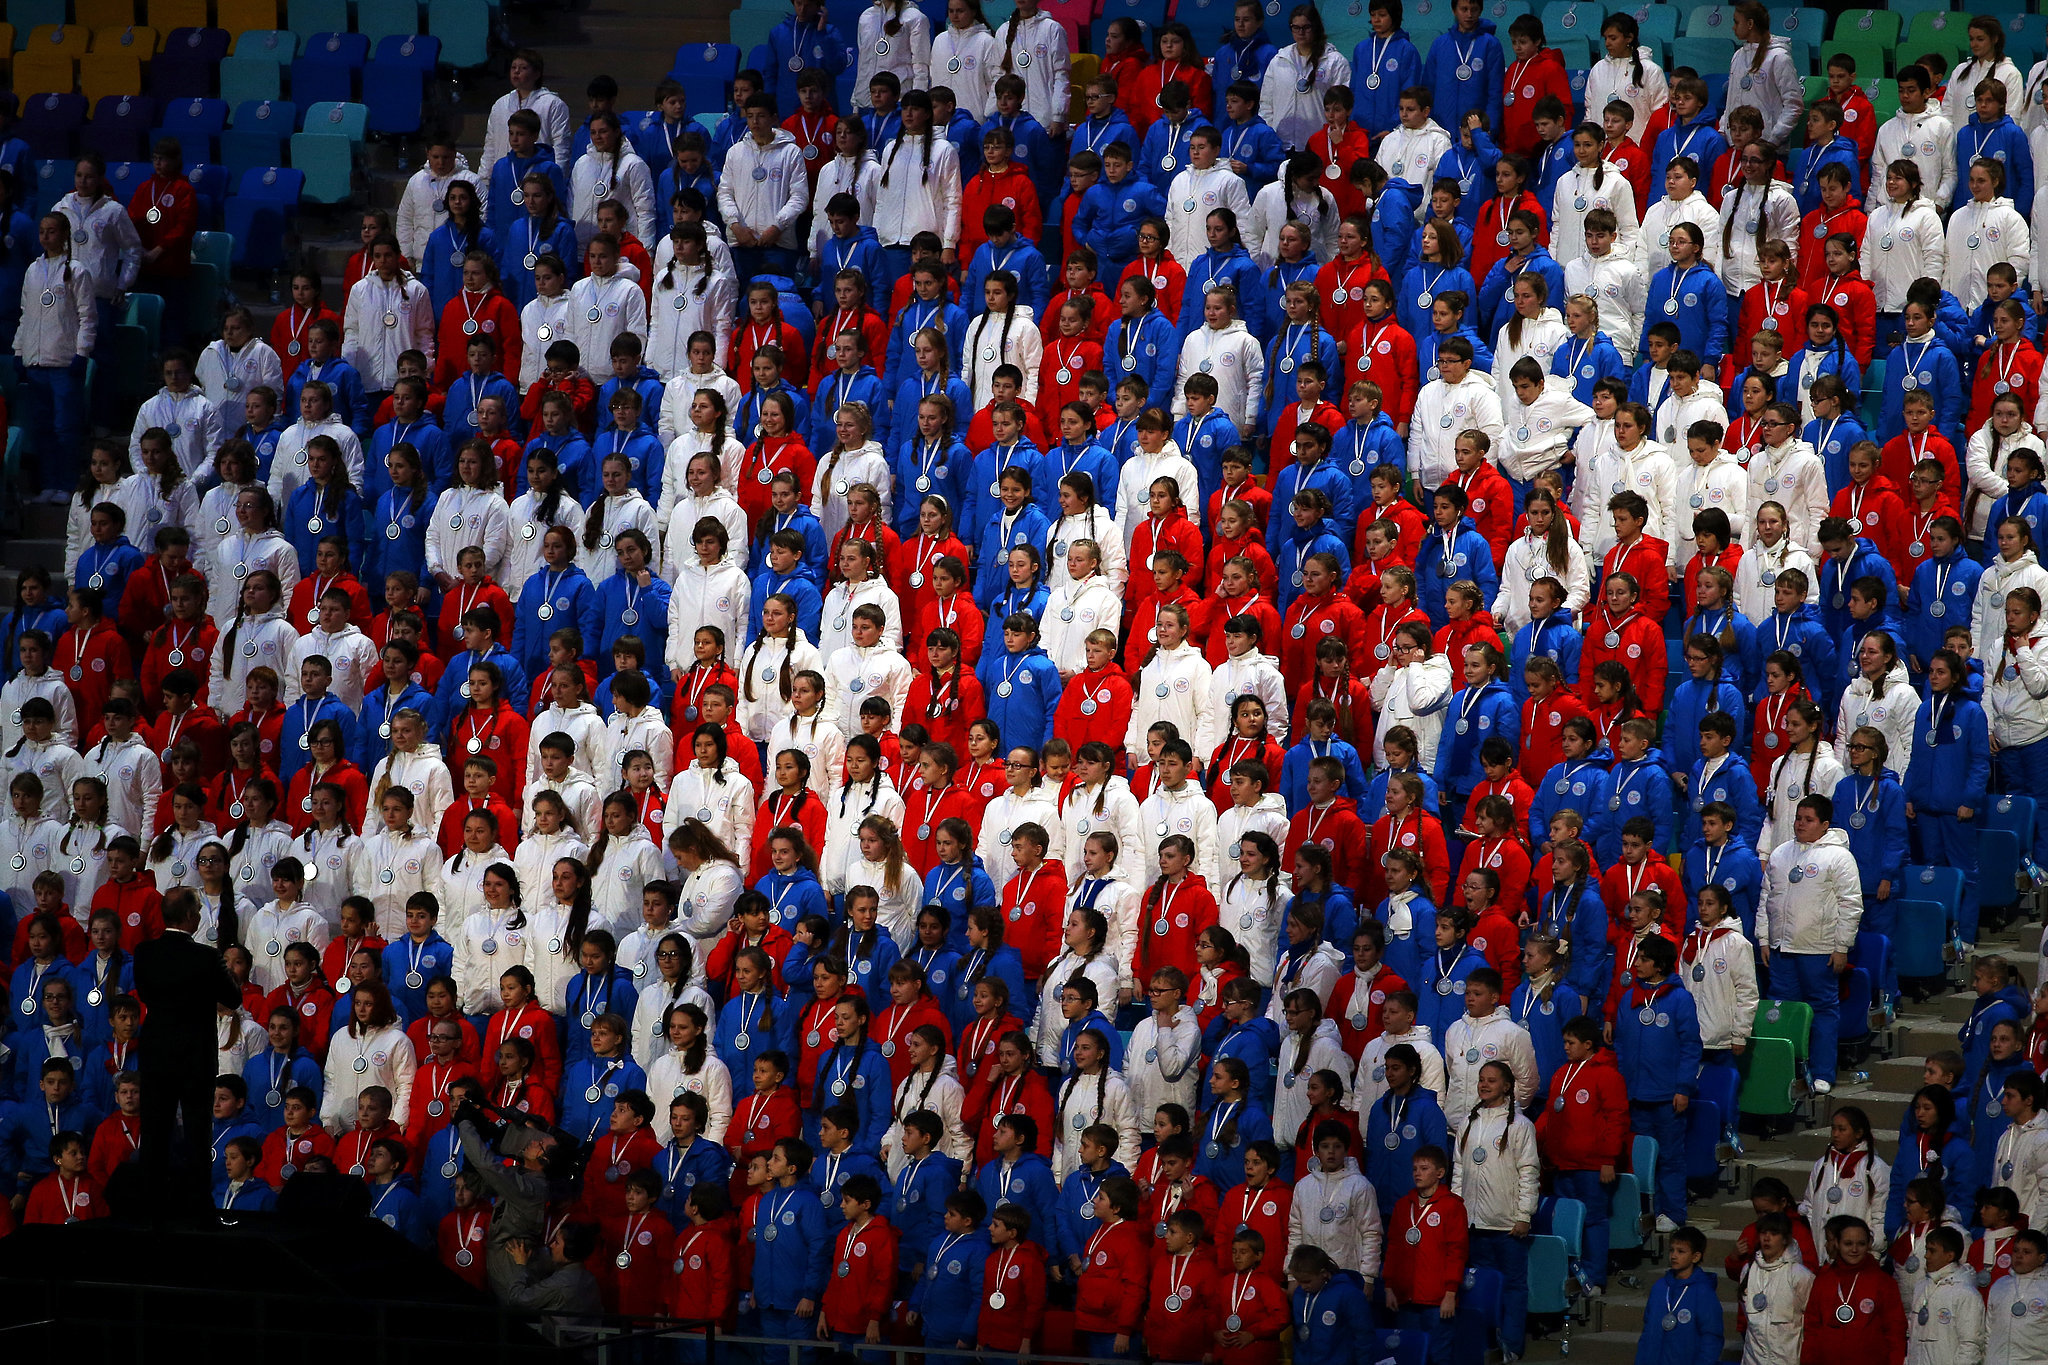 Children in red, white, and blue watched from the stands.